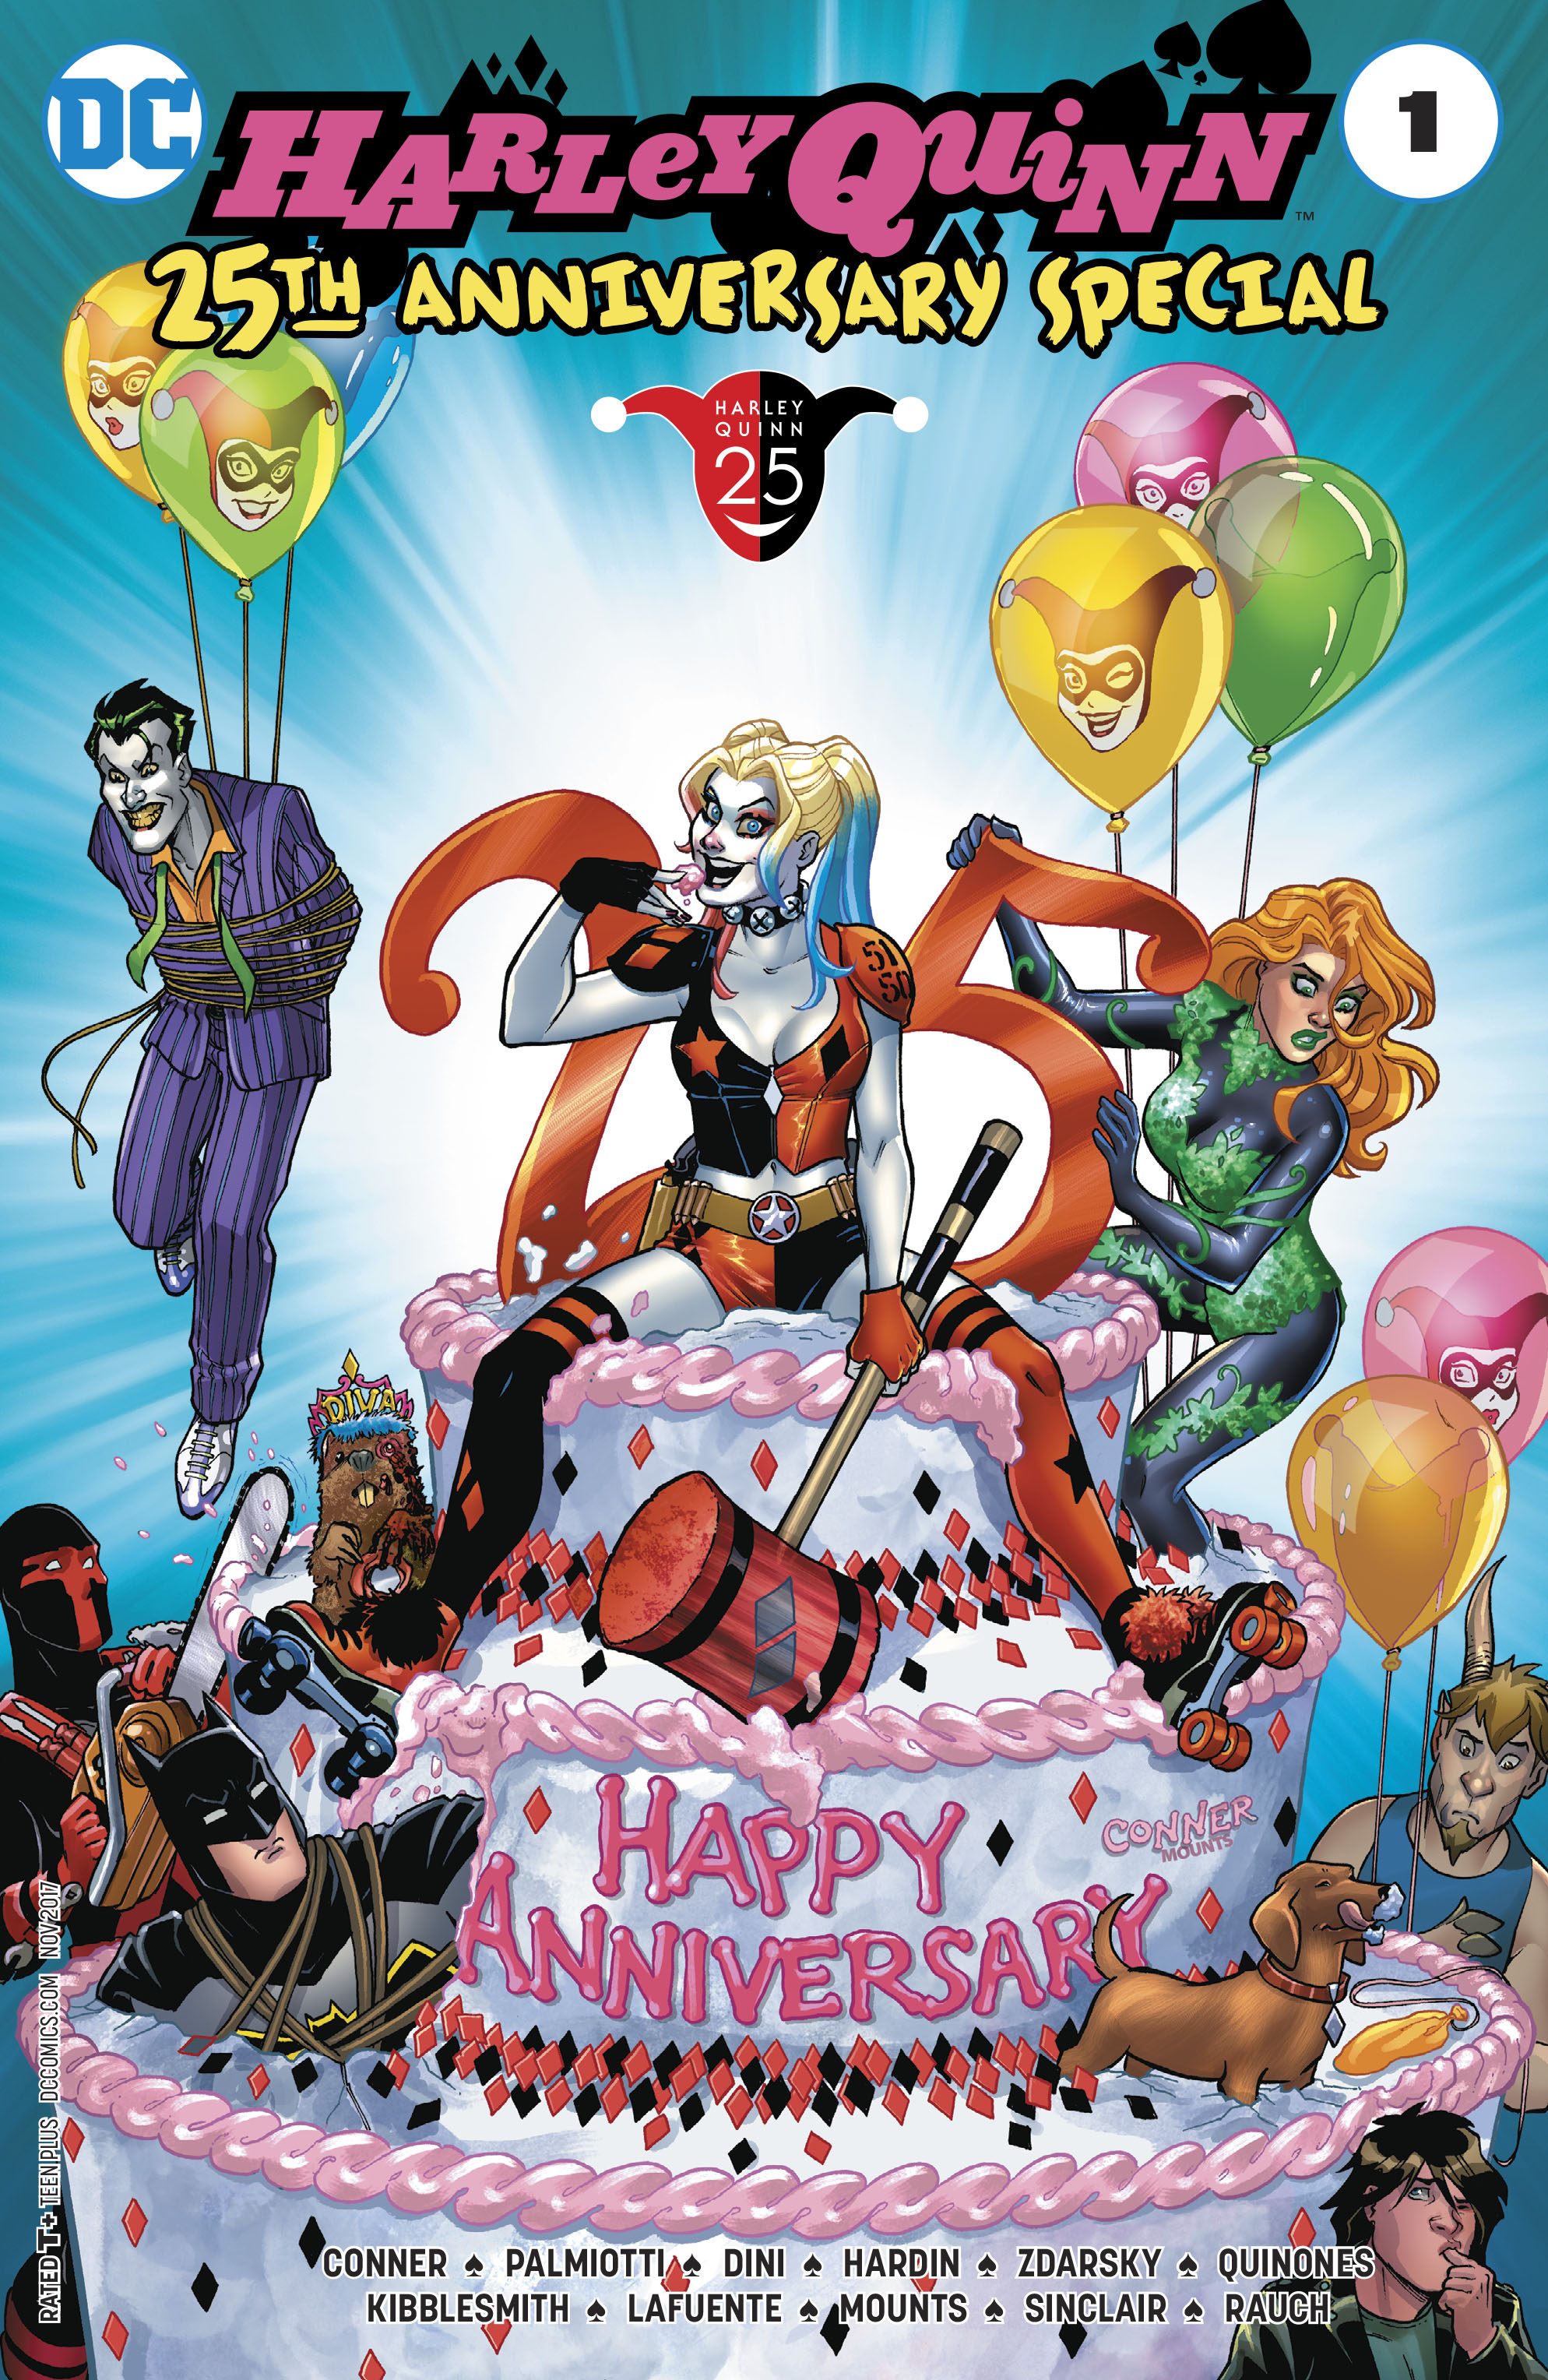 HARLEY QUINN 25TH ANNIVERSARY SPECIAL #1